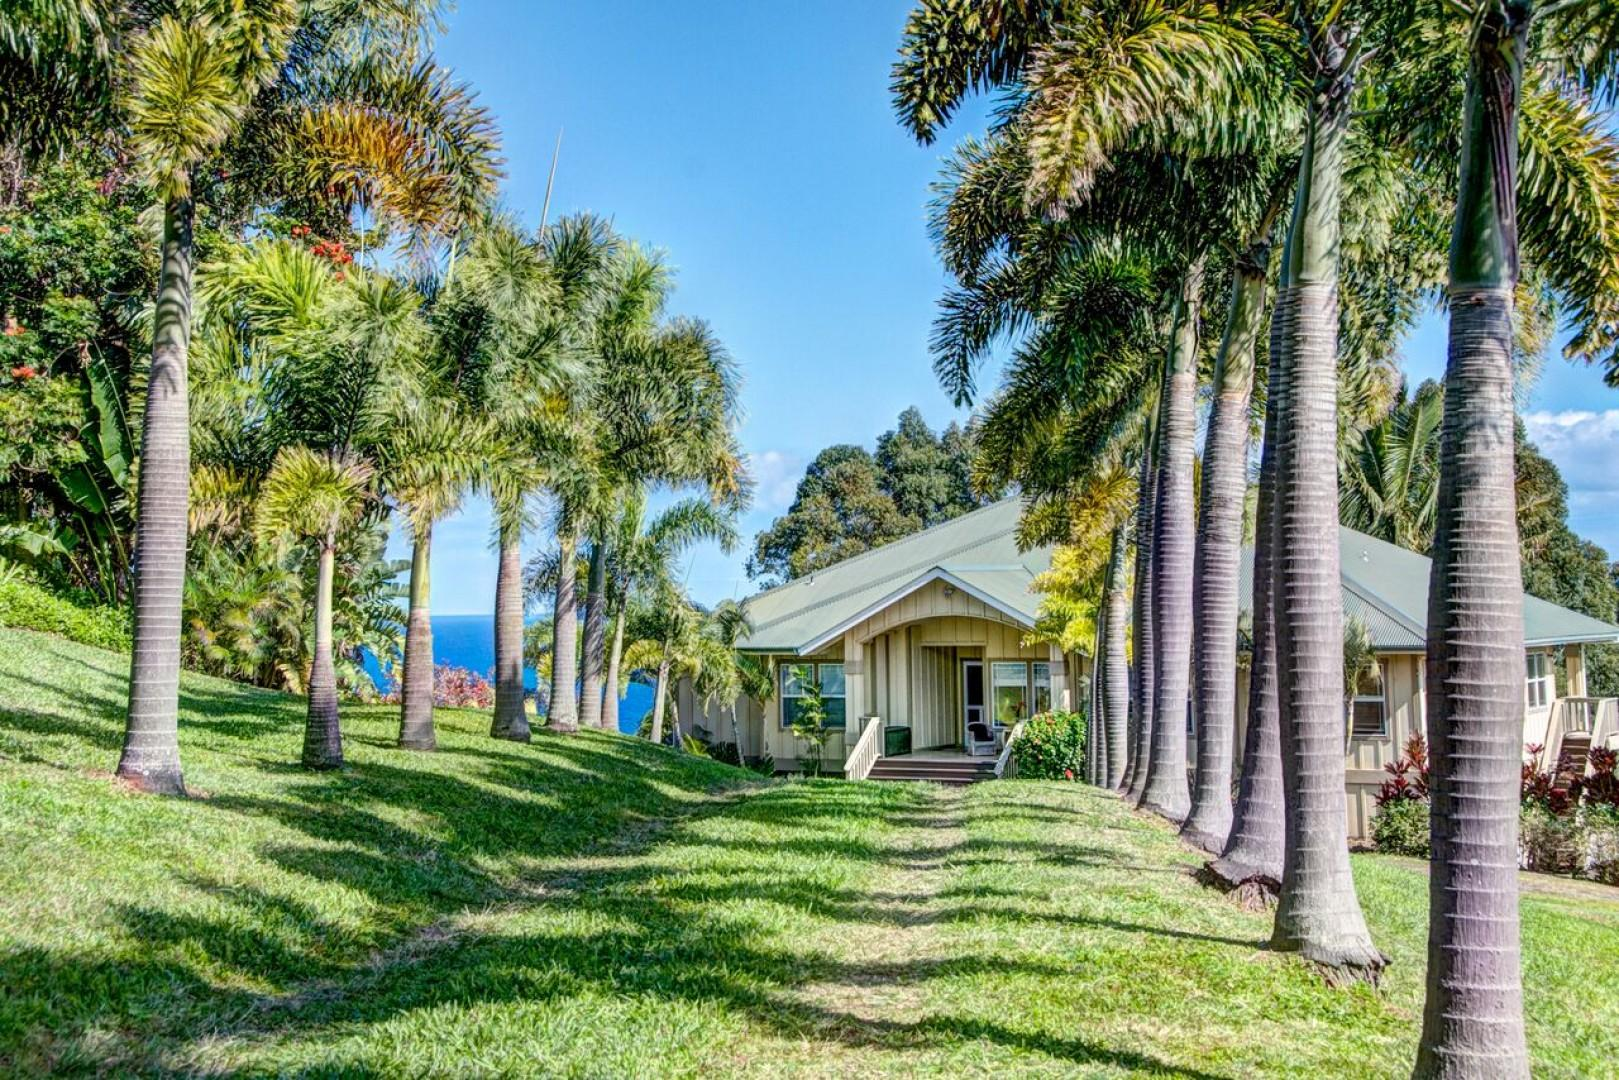 The gorgeous palm lined driveway welcomes you to your home away from home